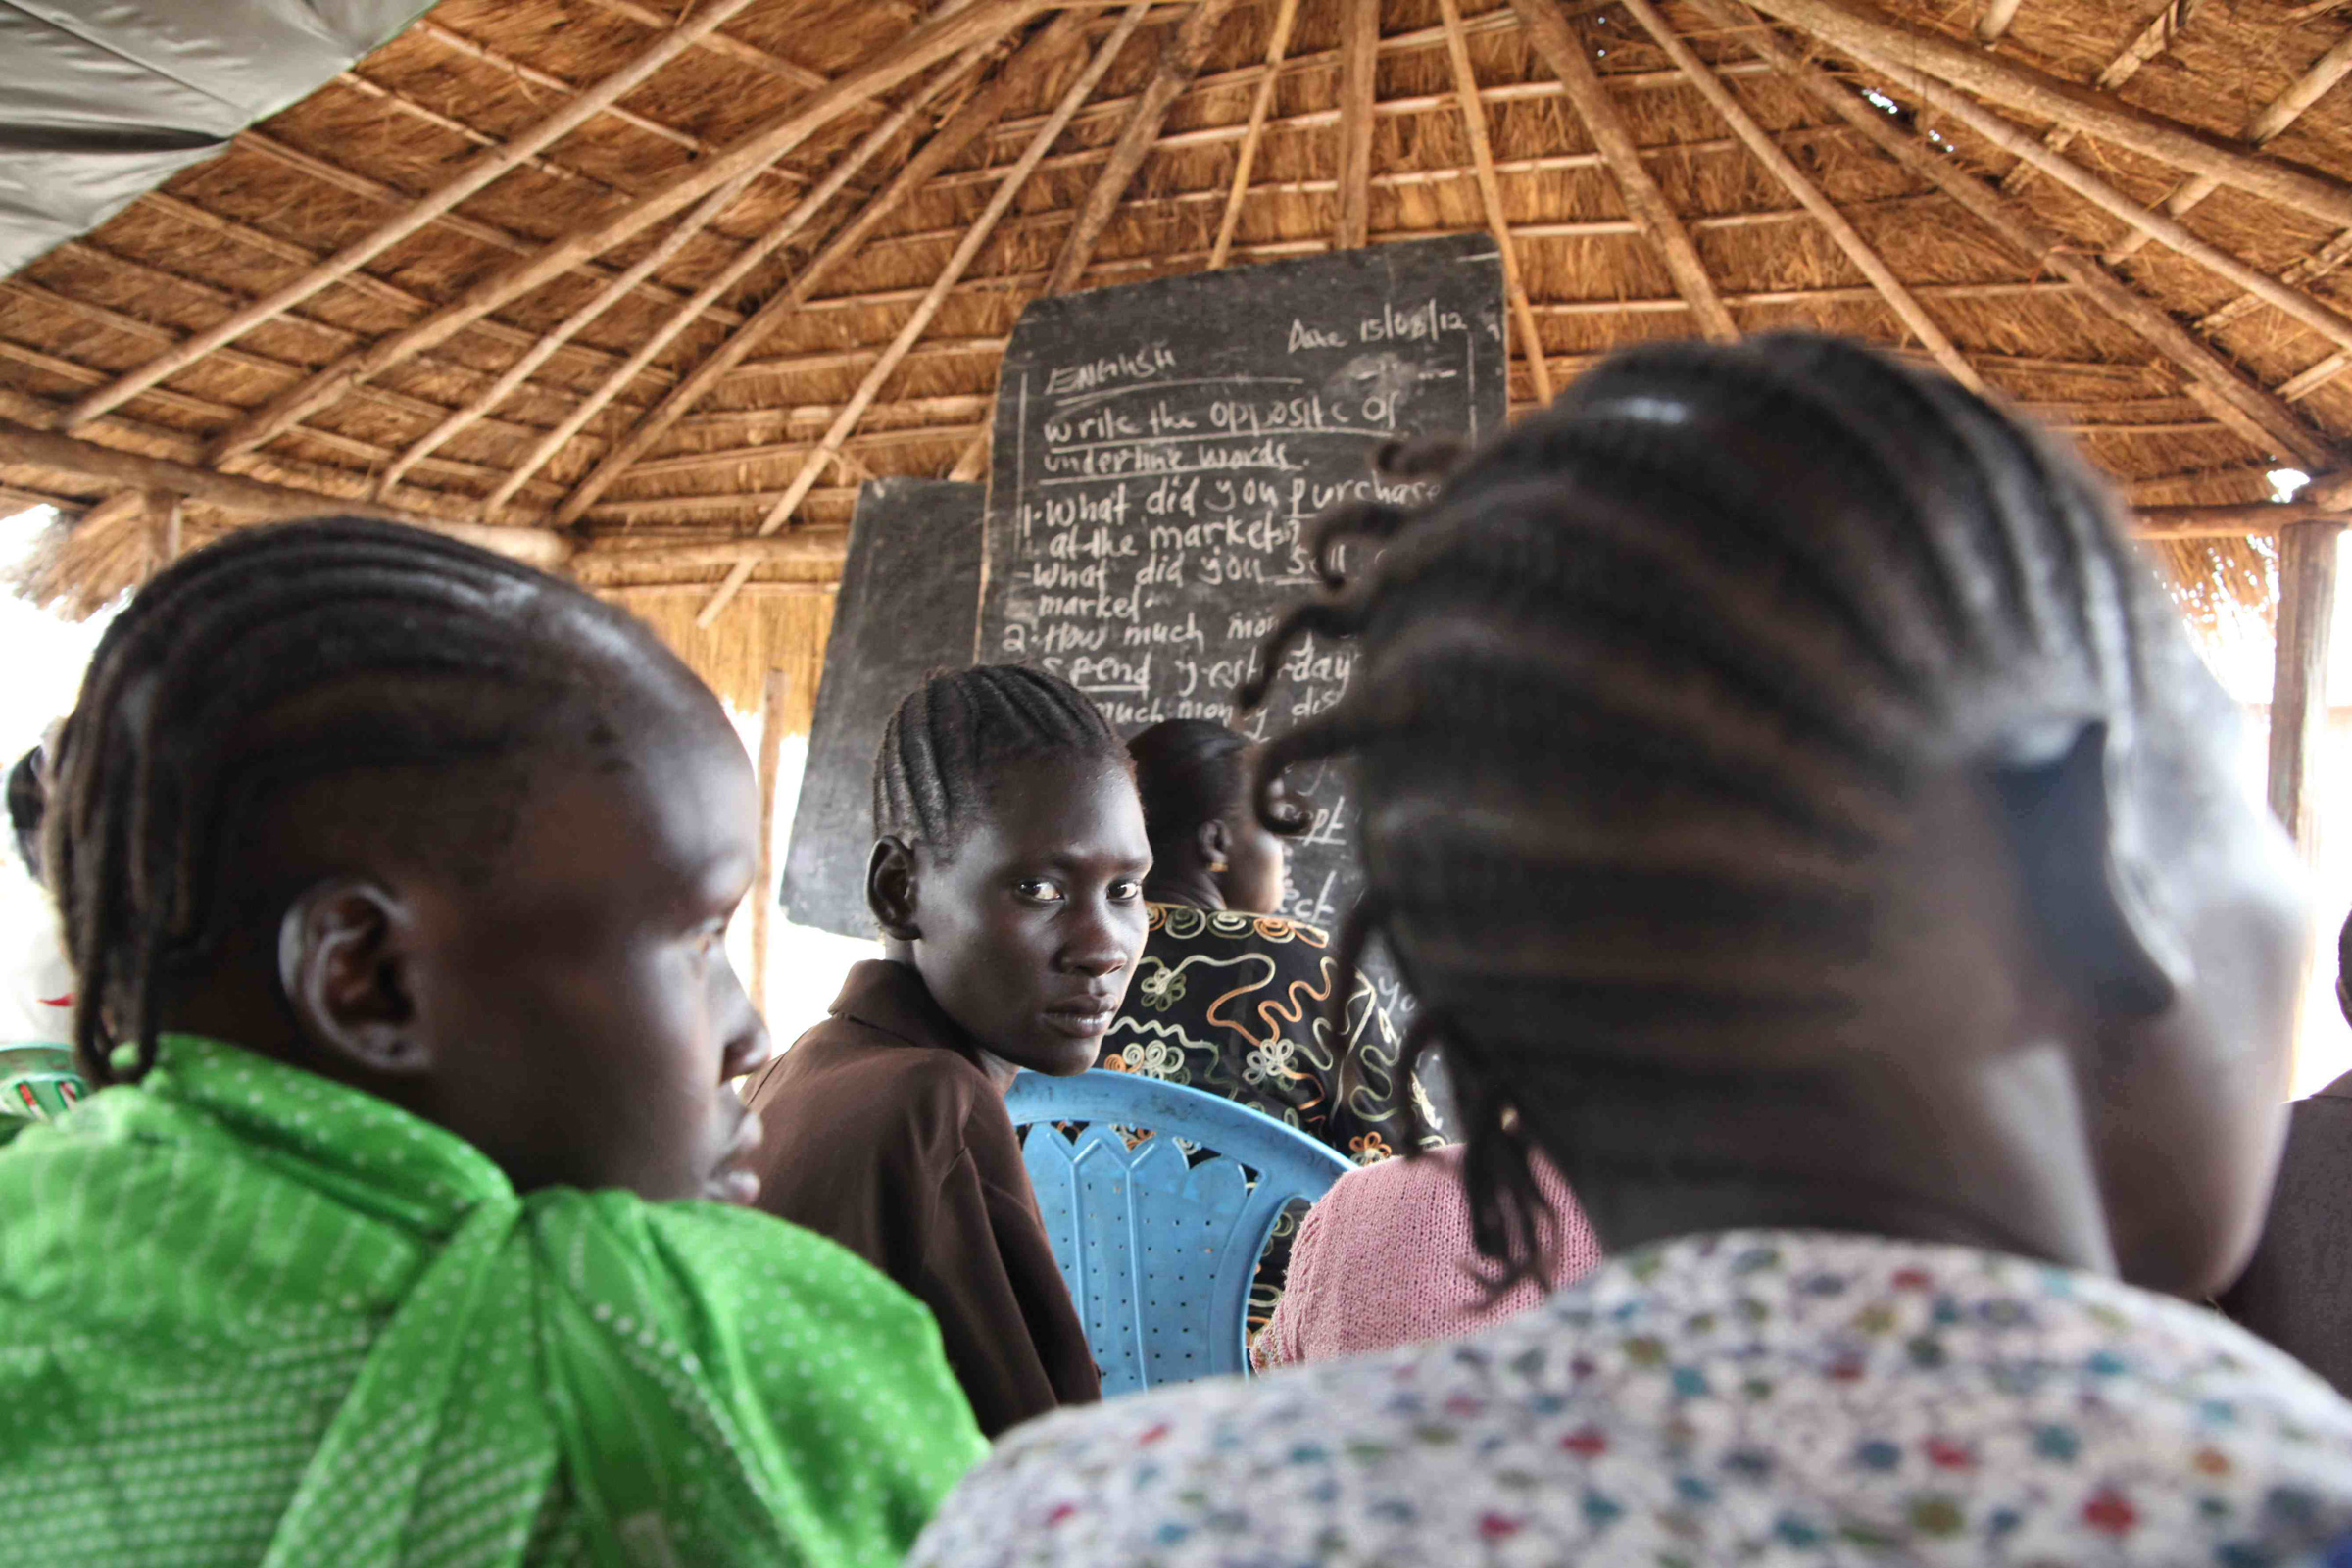 Women attend an adult learning programme at a primary school in Yei, near South Sudan's border with Uganda. Only 16 percent of the country's women are literate